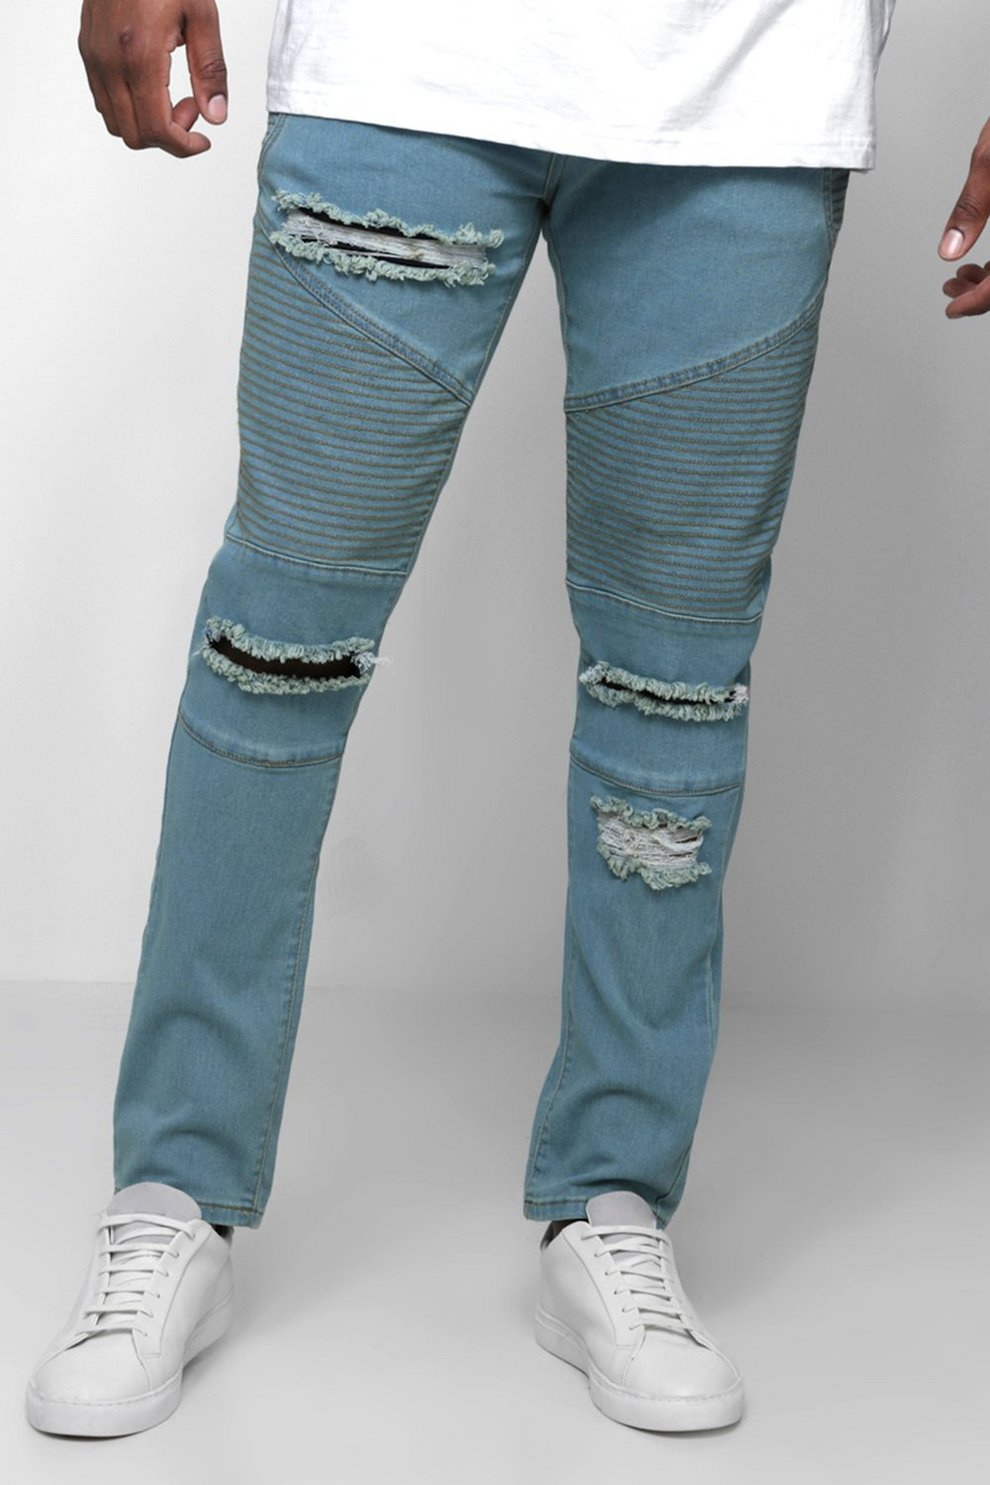 35a4008c231a Big And Tall Ripped Skinny Jeans - Image Of Jeans